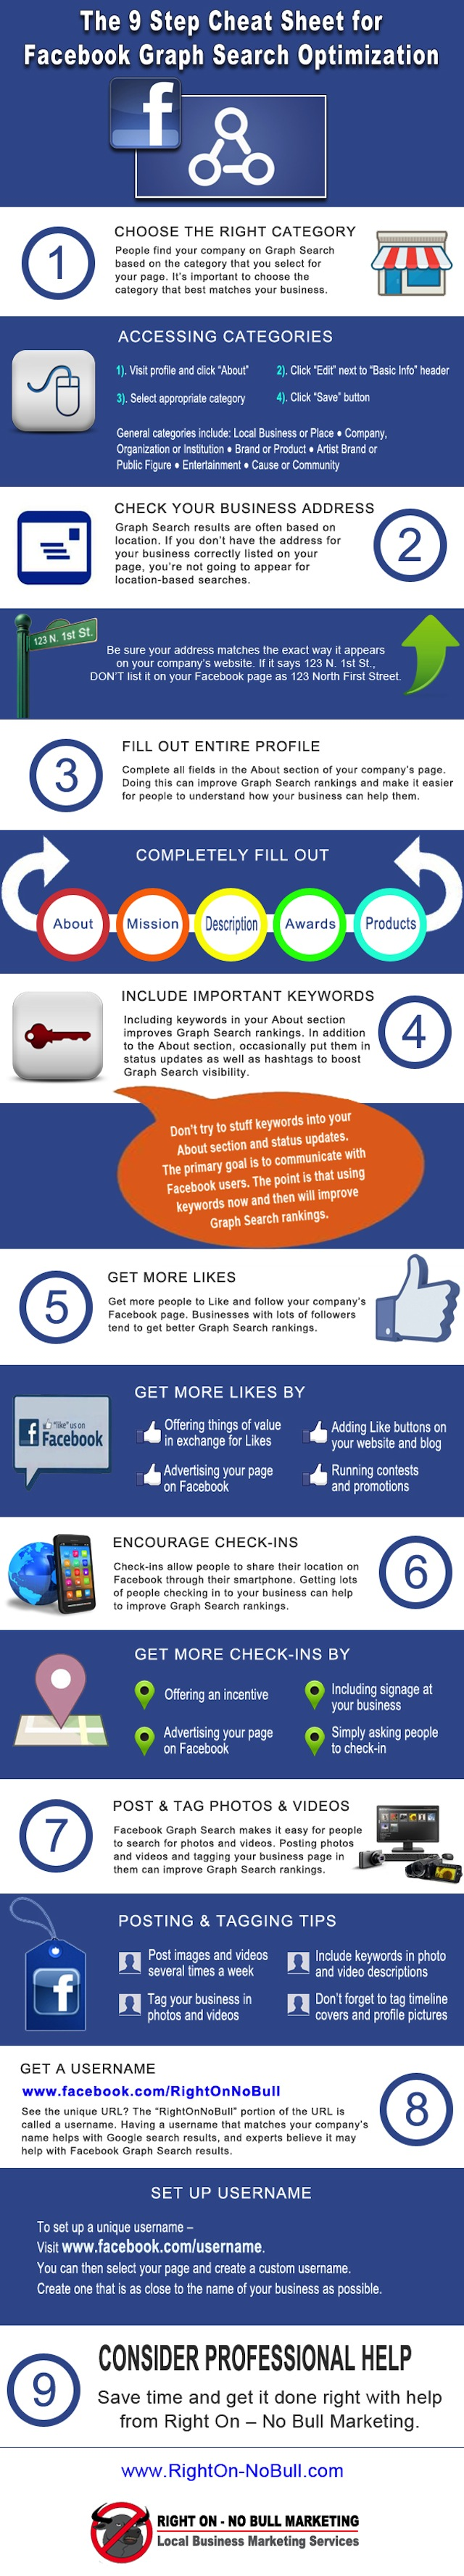 facebook-graph-search-infographic